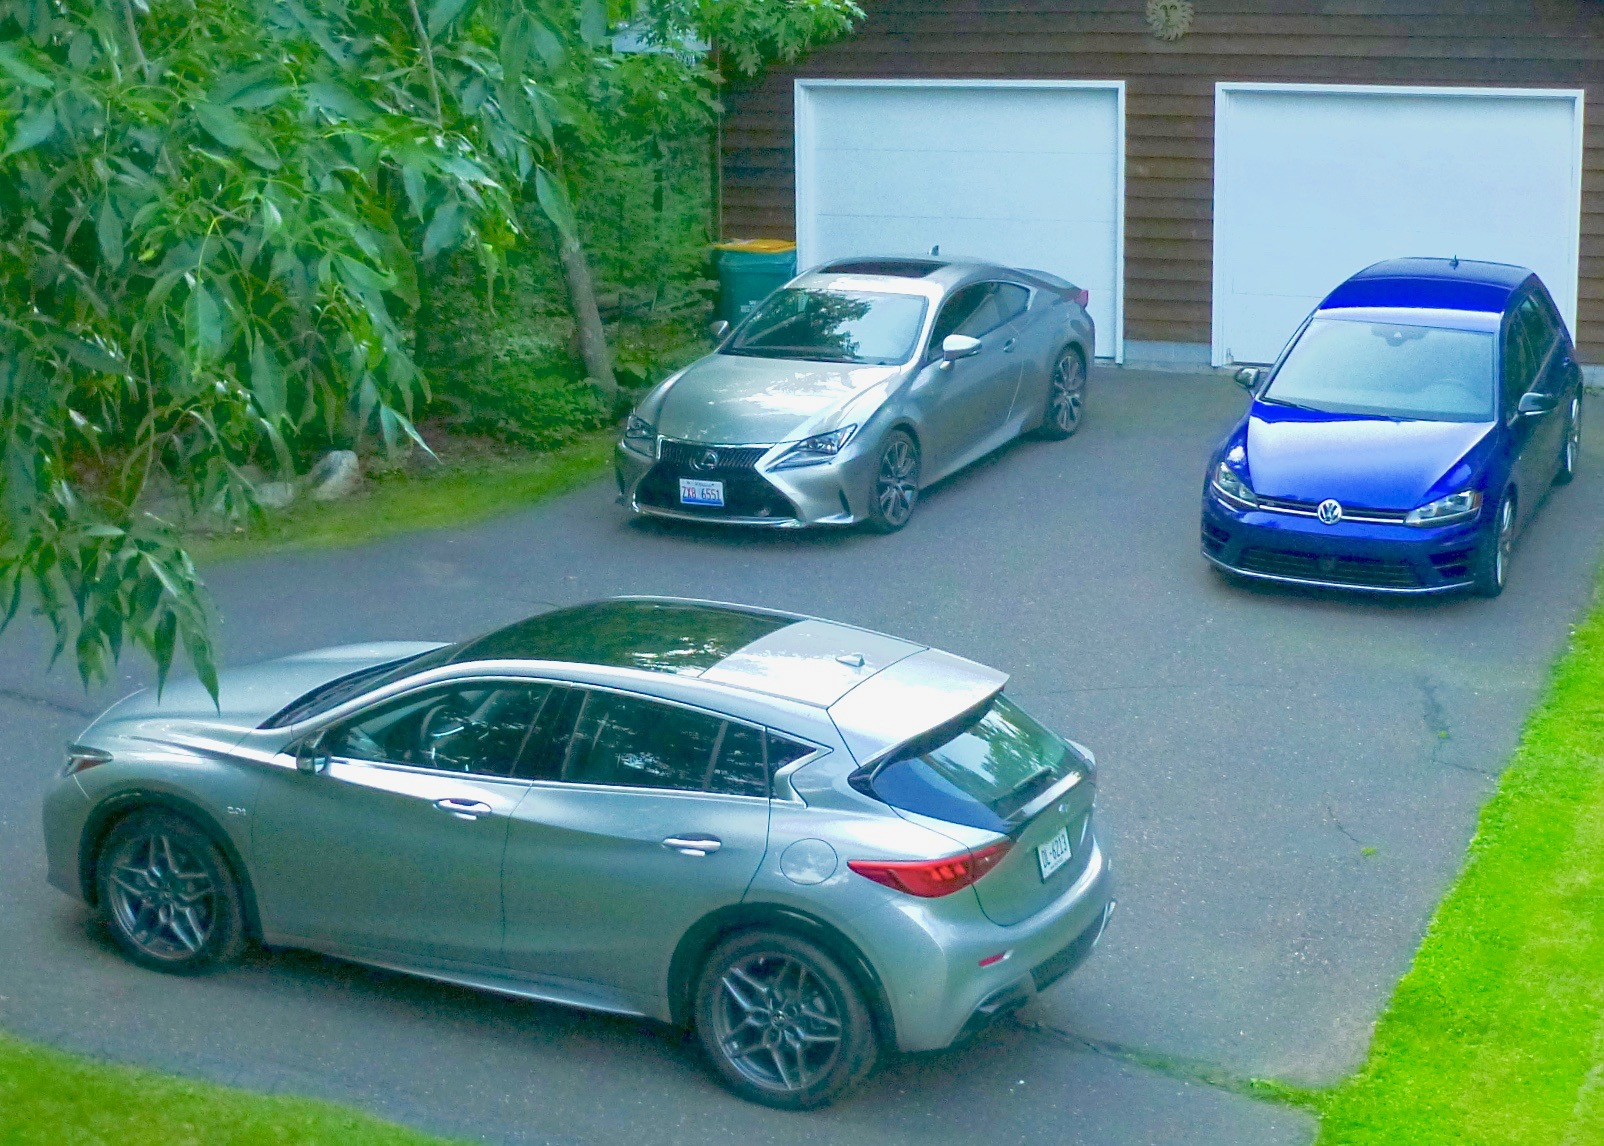 Sporty SUV is Infiniti QX-30 in foreground; sleek sports coupe is Lexus RC350 left rear; latest version of hot hatchback is Volkswagen Golf R, upper right.